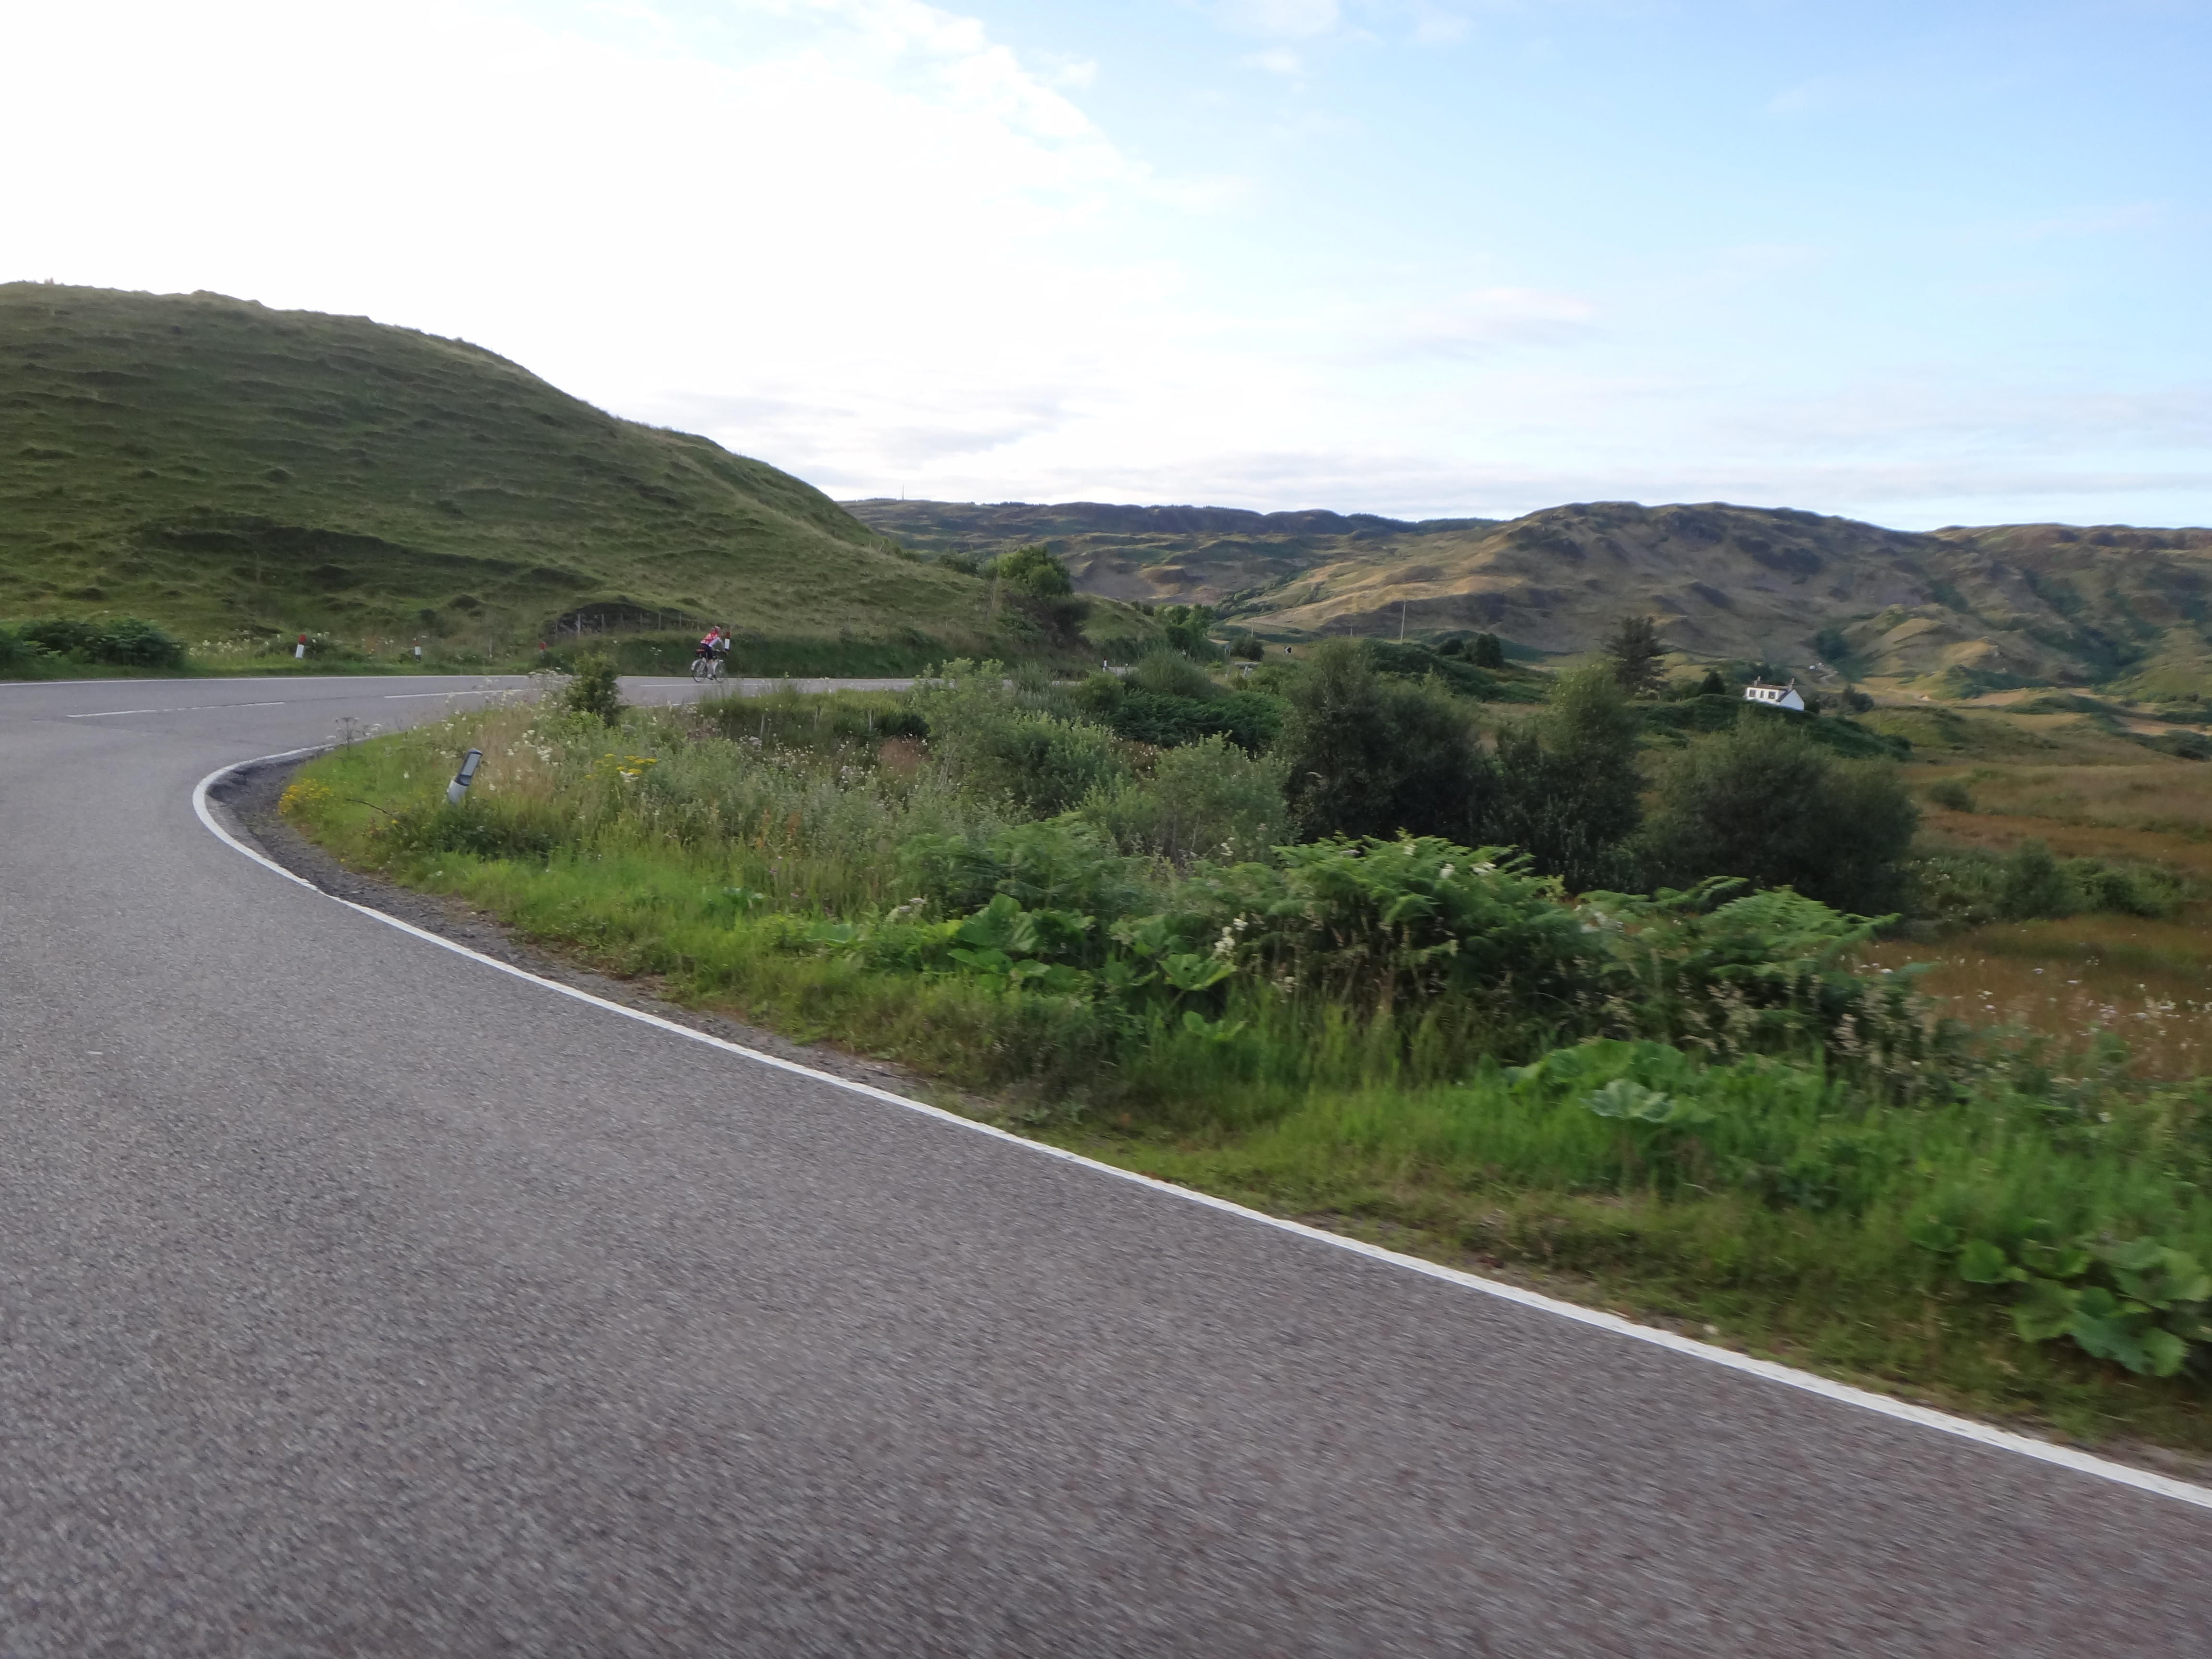 Between Lochgilphead and Oban